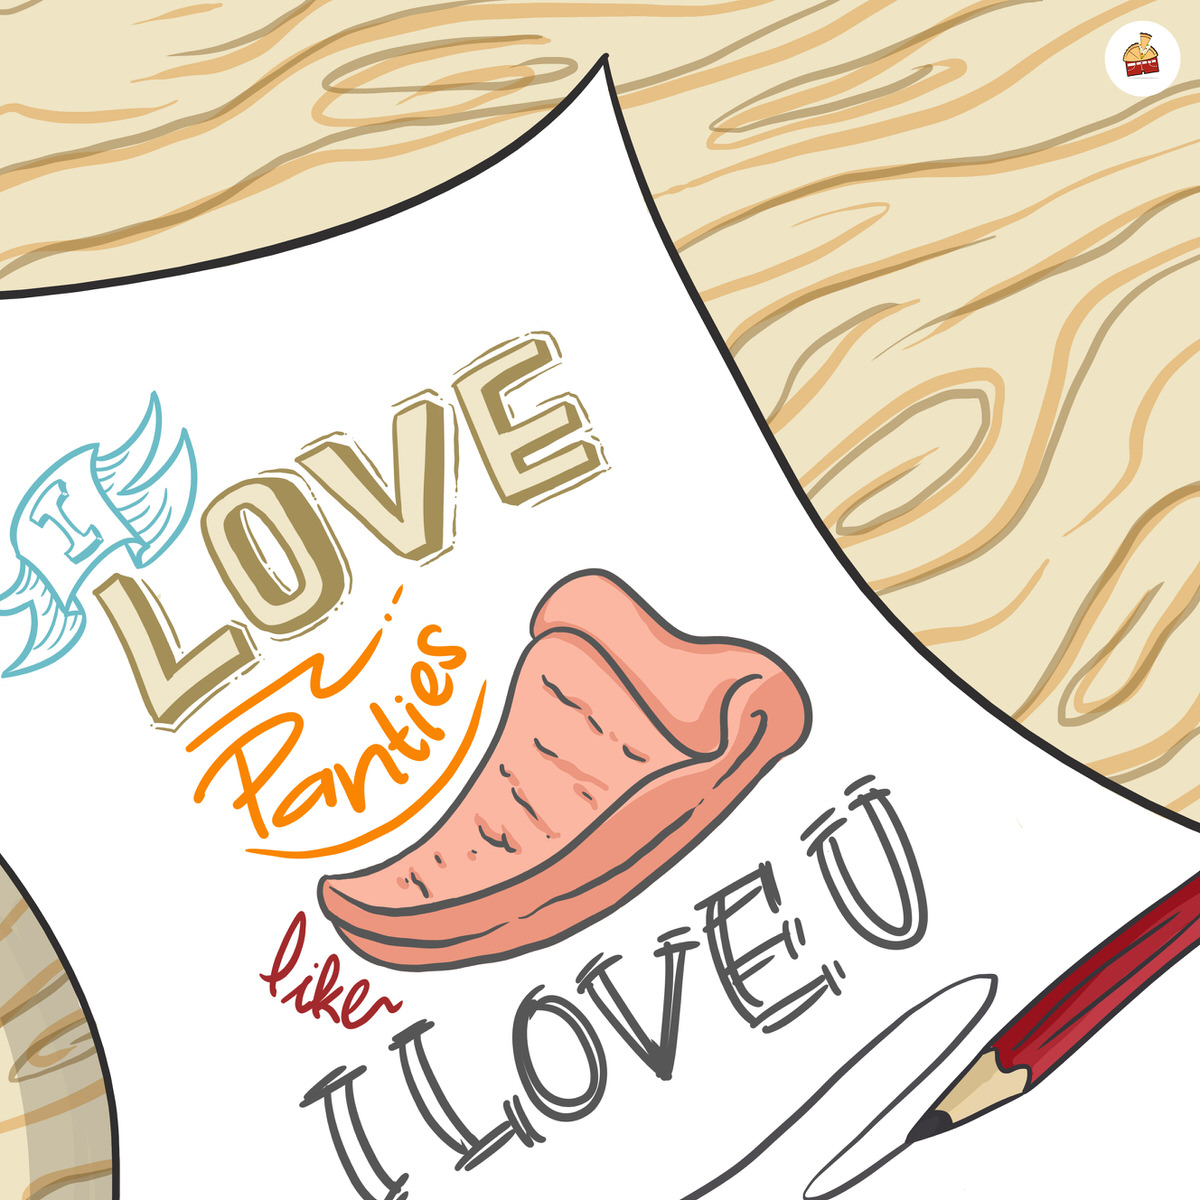 Love You Panties Pizza Like Always Jadikan Panties Pizza Inspirasi Senimu Slide